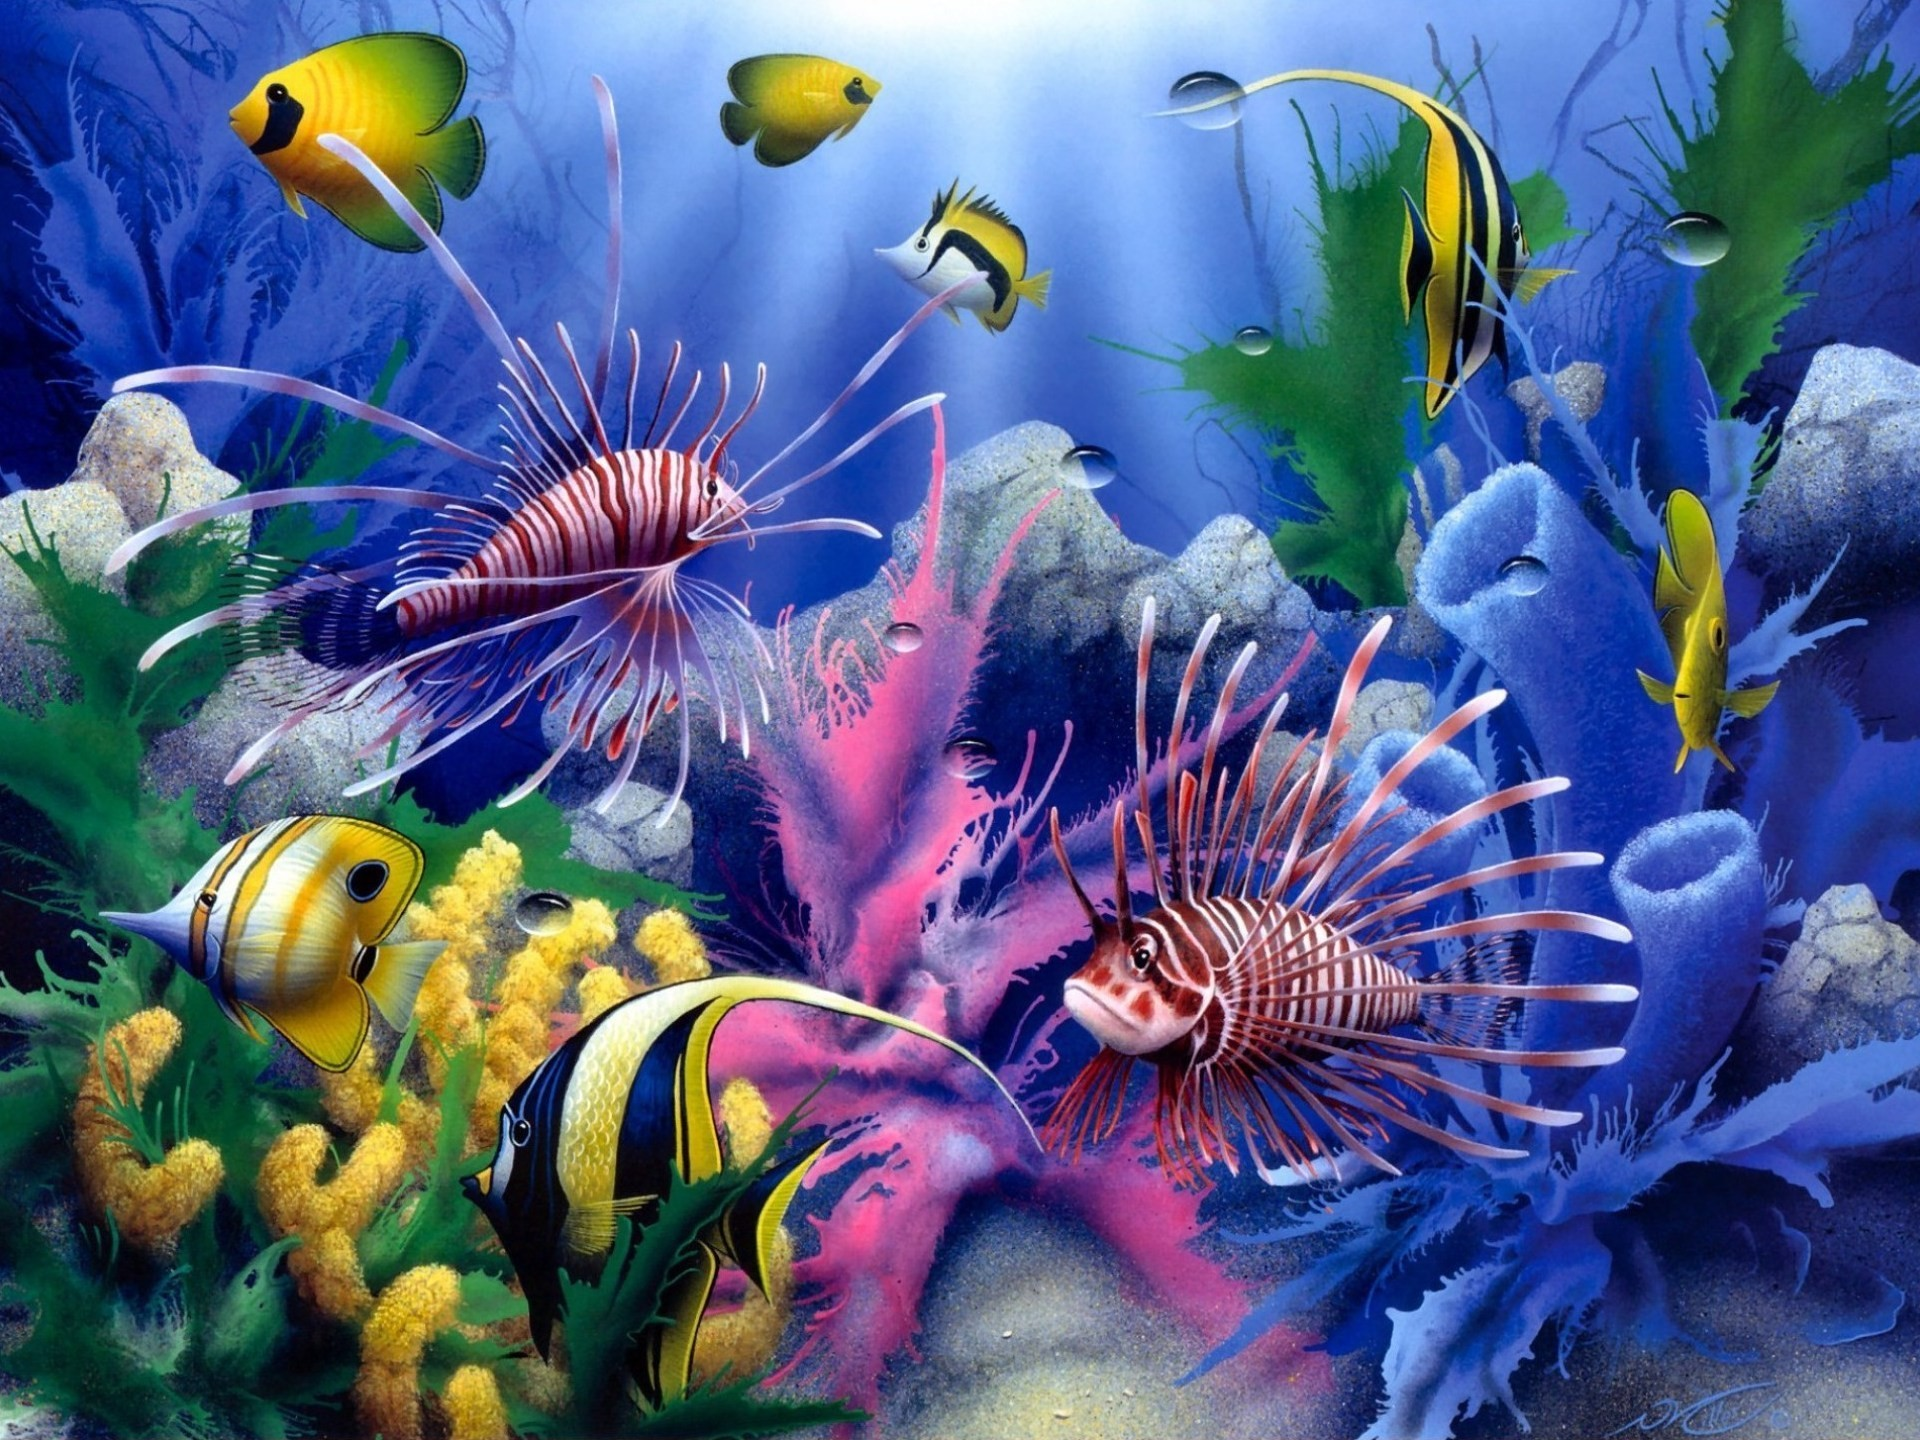 Lions of the Sea David Miller painting art animals fishes tropical sealife  life color underwater coral reef ocean sea sunlight wallpaper background